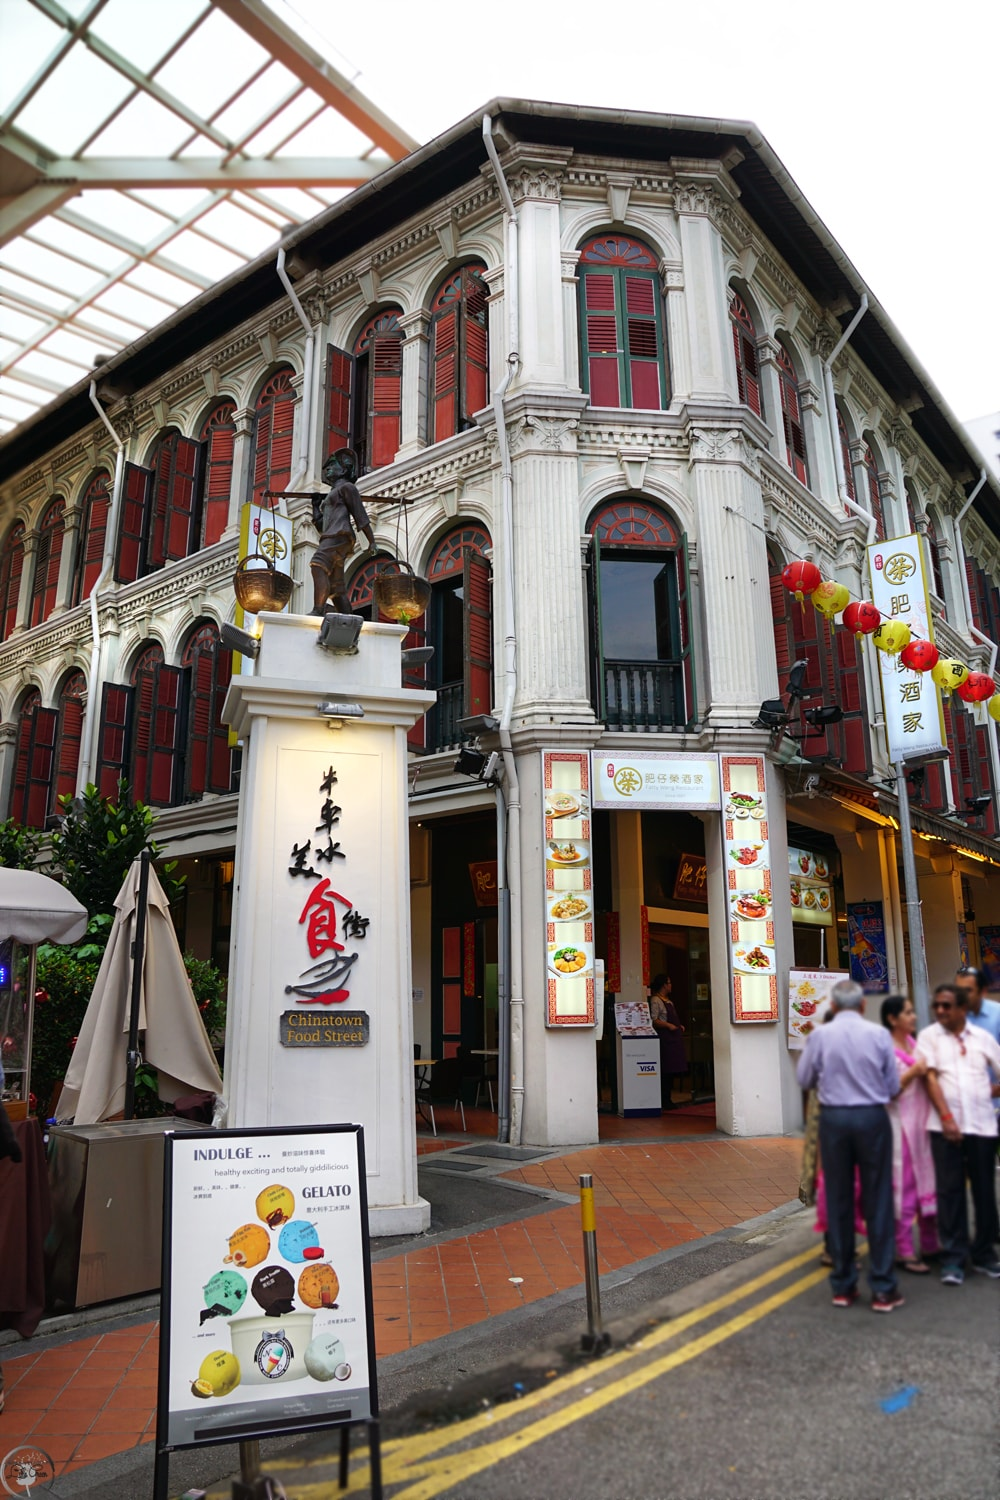 Chinatown Heritage Centre, Food Street, Singapore